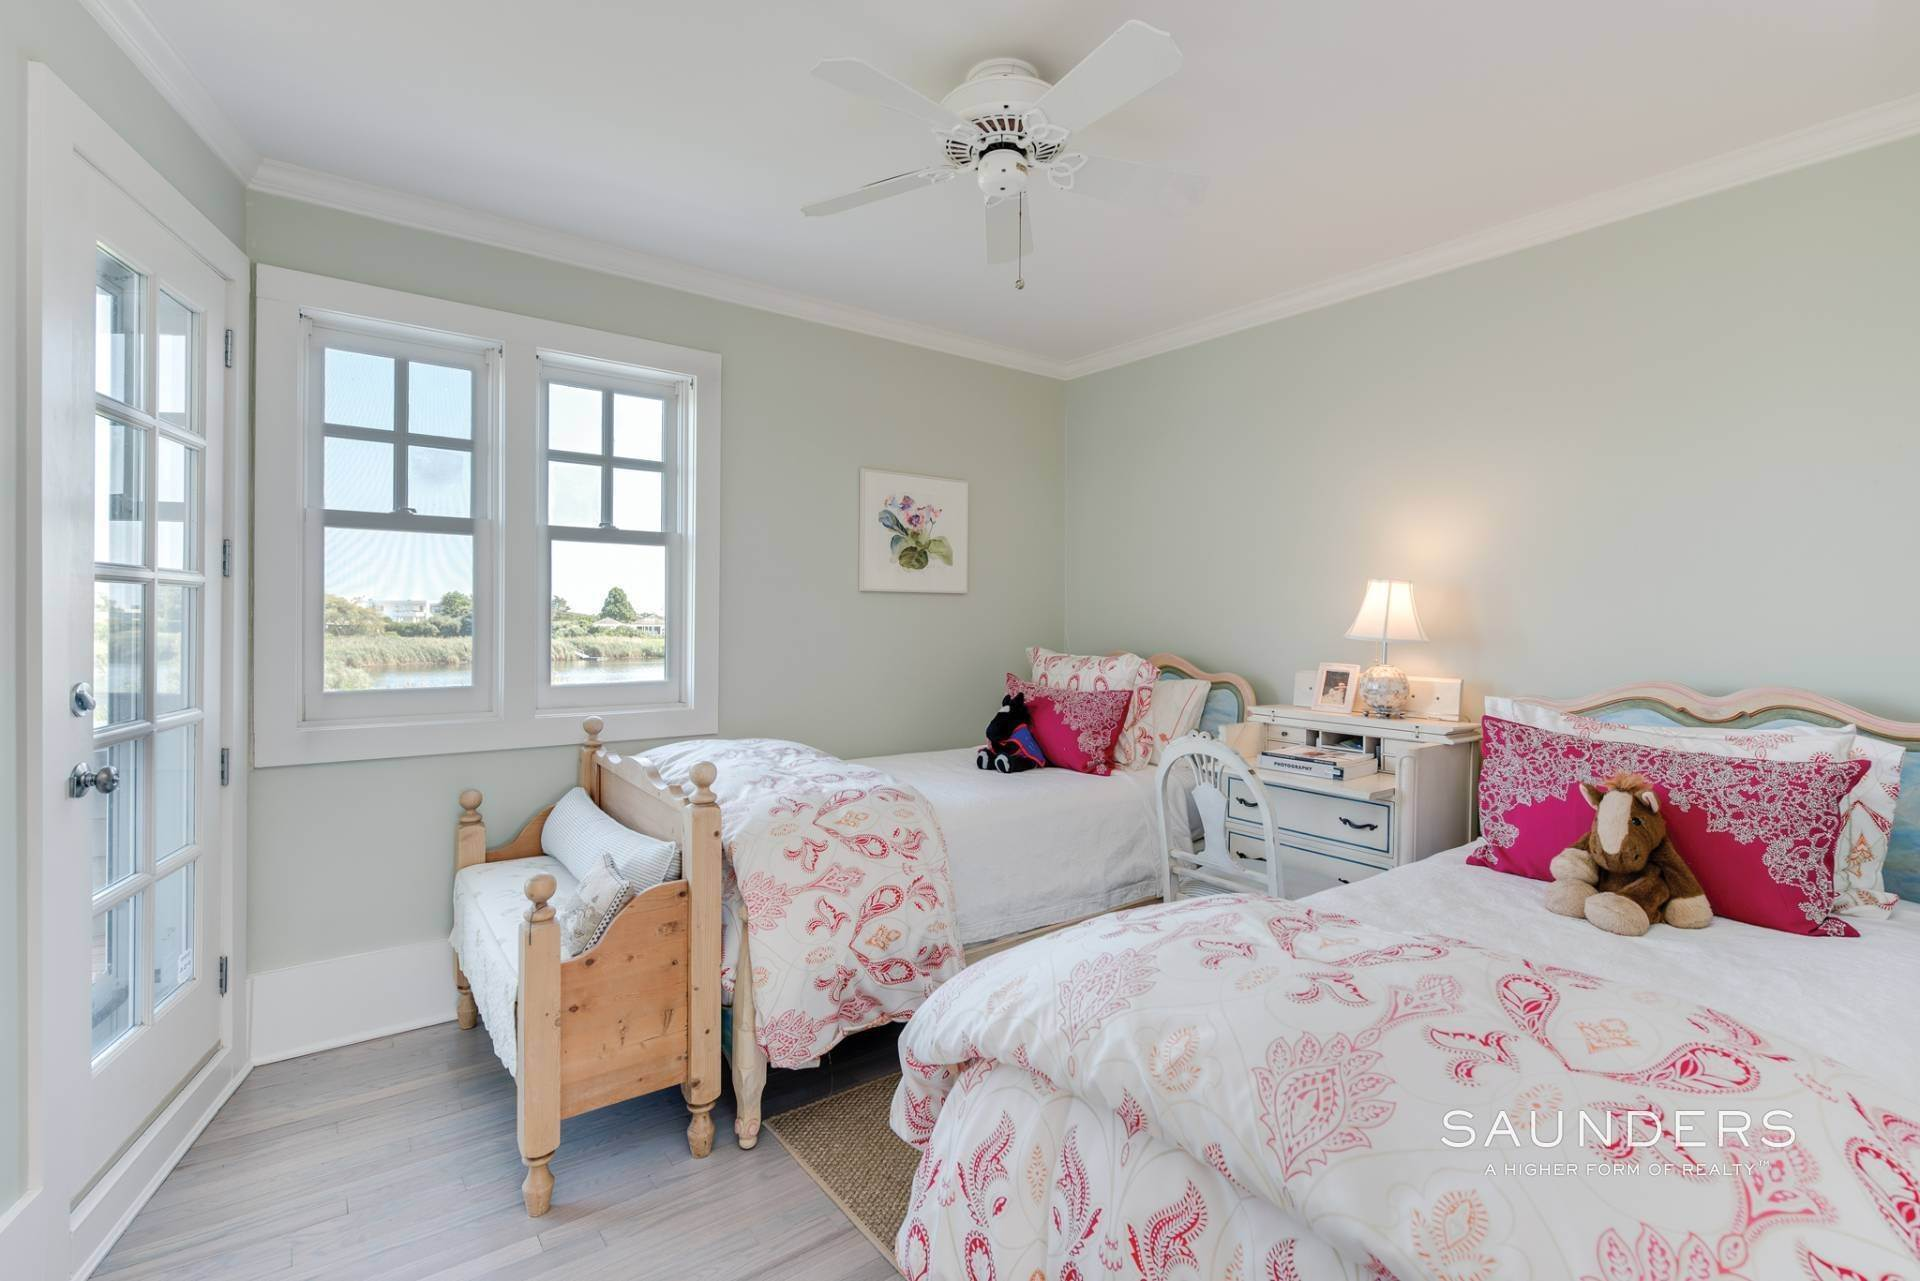 15. Single Family Homes for Sale at Bridgehampton South Waterfront With Dock & Ocean View 87 Rose Way, Bridgehampton, Southampton Town, NY 11932